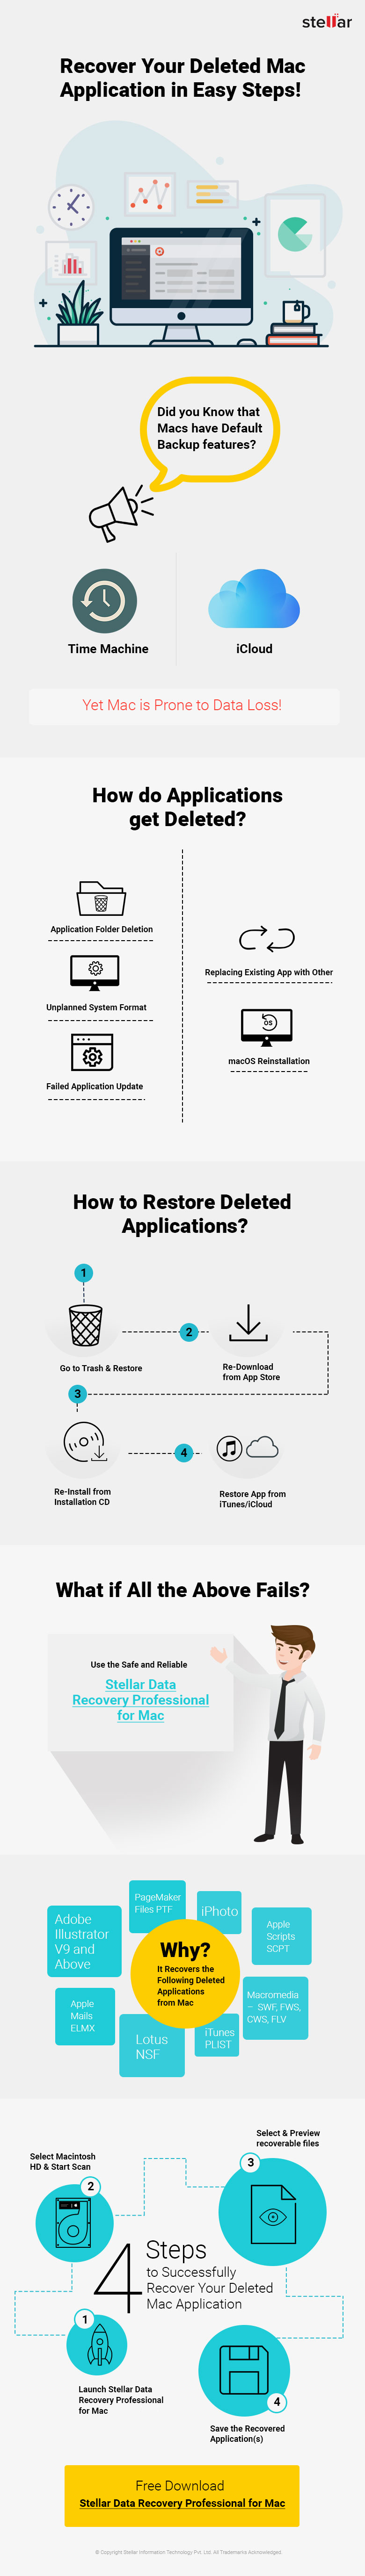 How to Recover Deleted Applications from Mac Hard Disk Drive